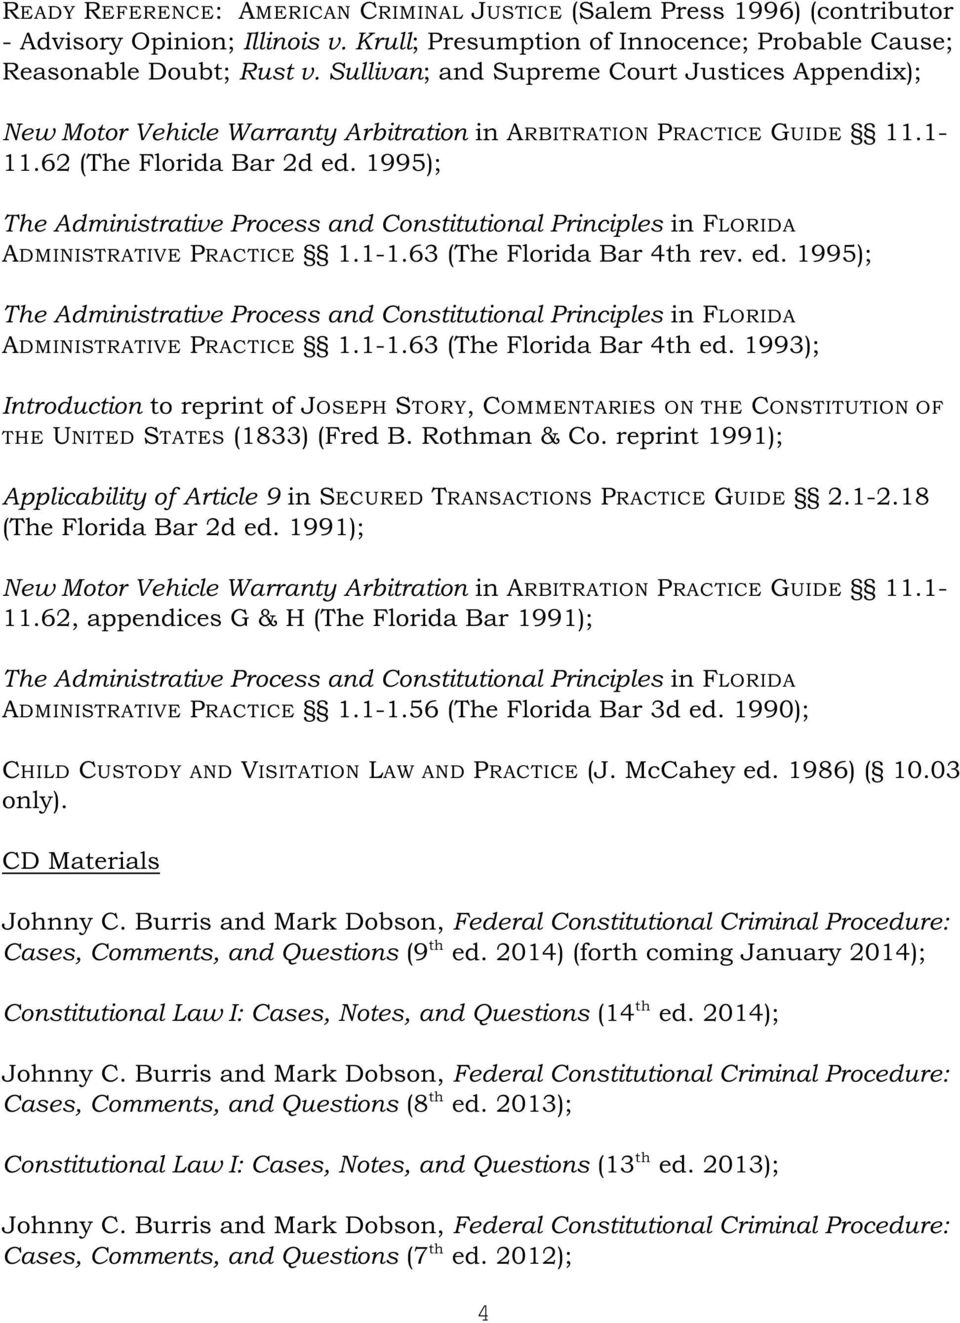 1995); The Administrative Process and Constitutional Principles in FLORIDA ADMINISTRATIVE PRACTICE 1.1-1.63 (The Florida Bar 4 rev. ed.